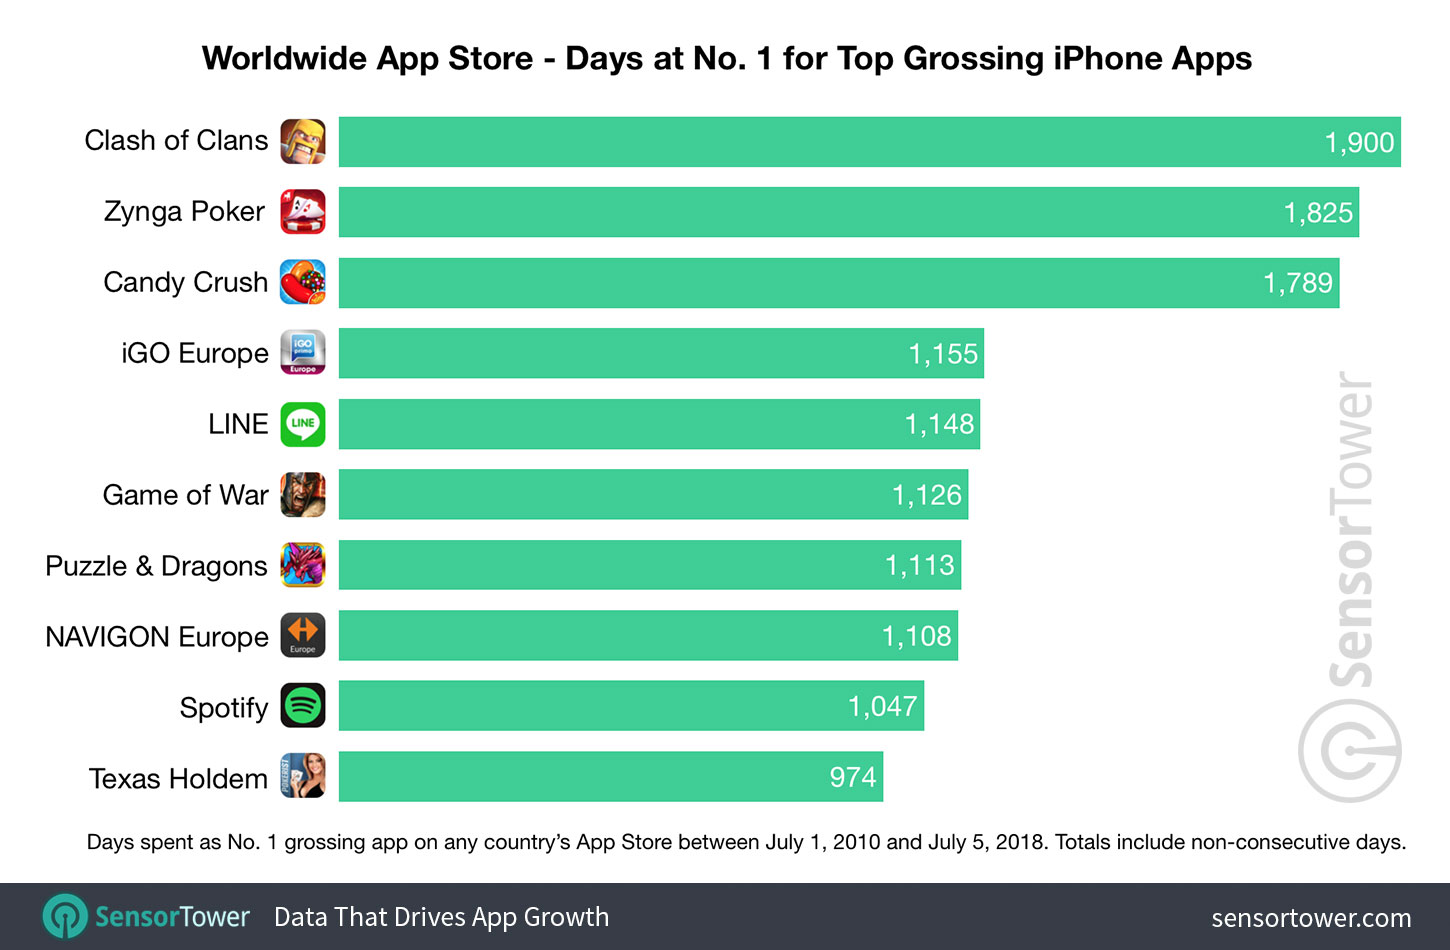 top grossing iPhone apps on App Store